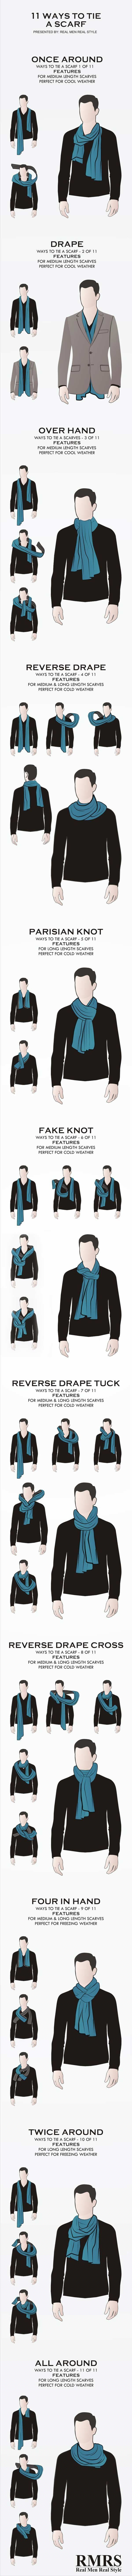 11 ways to tie mans scarf infographic. Psst.., woman can learn and apply this too ;)